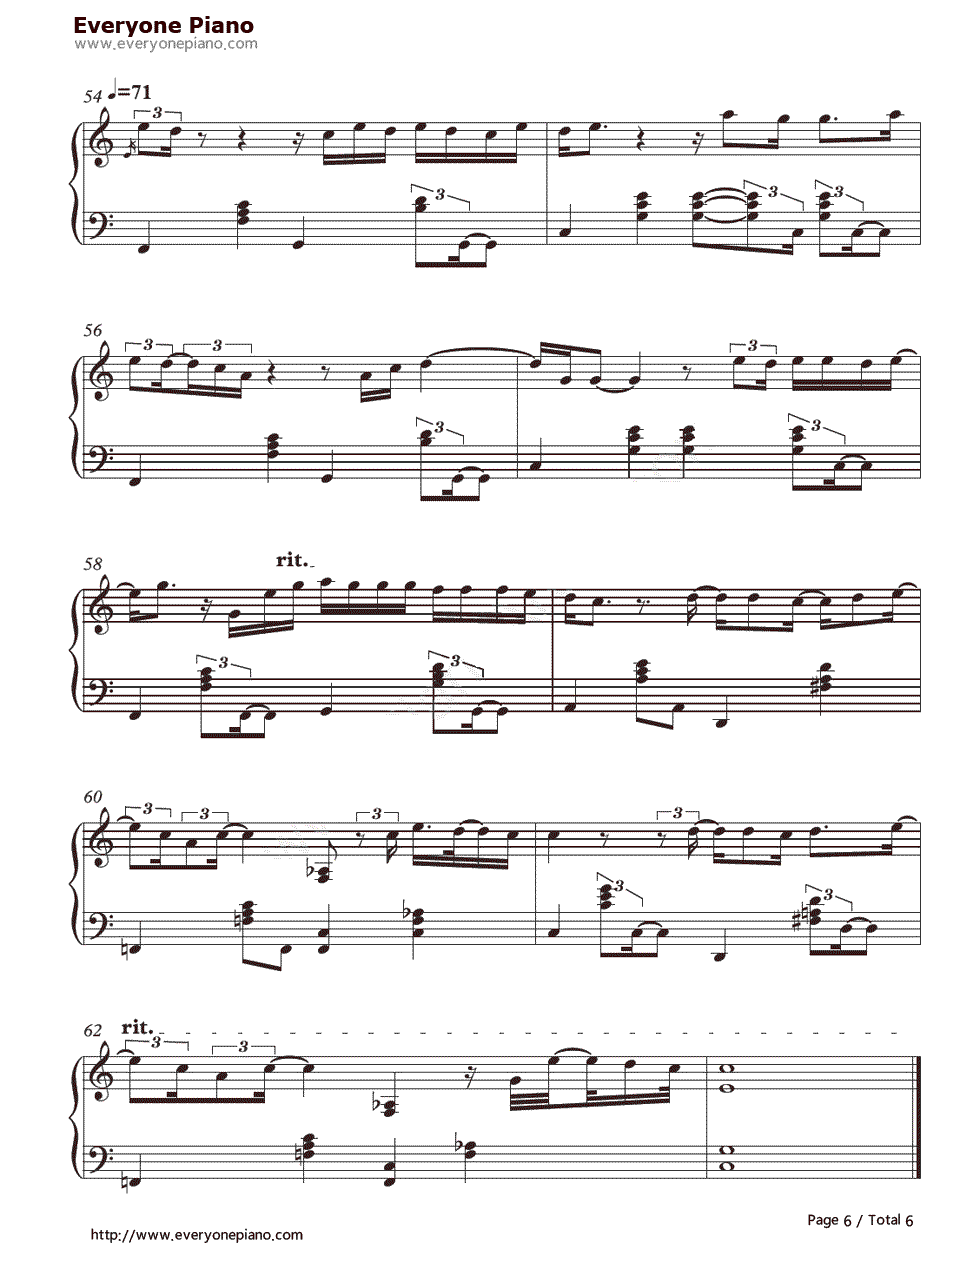 When I Was Your Man-Bruno Mars Stave Preview 6-Free Piano Sheet Music u0026 Piano Chords